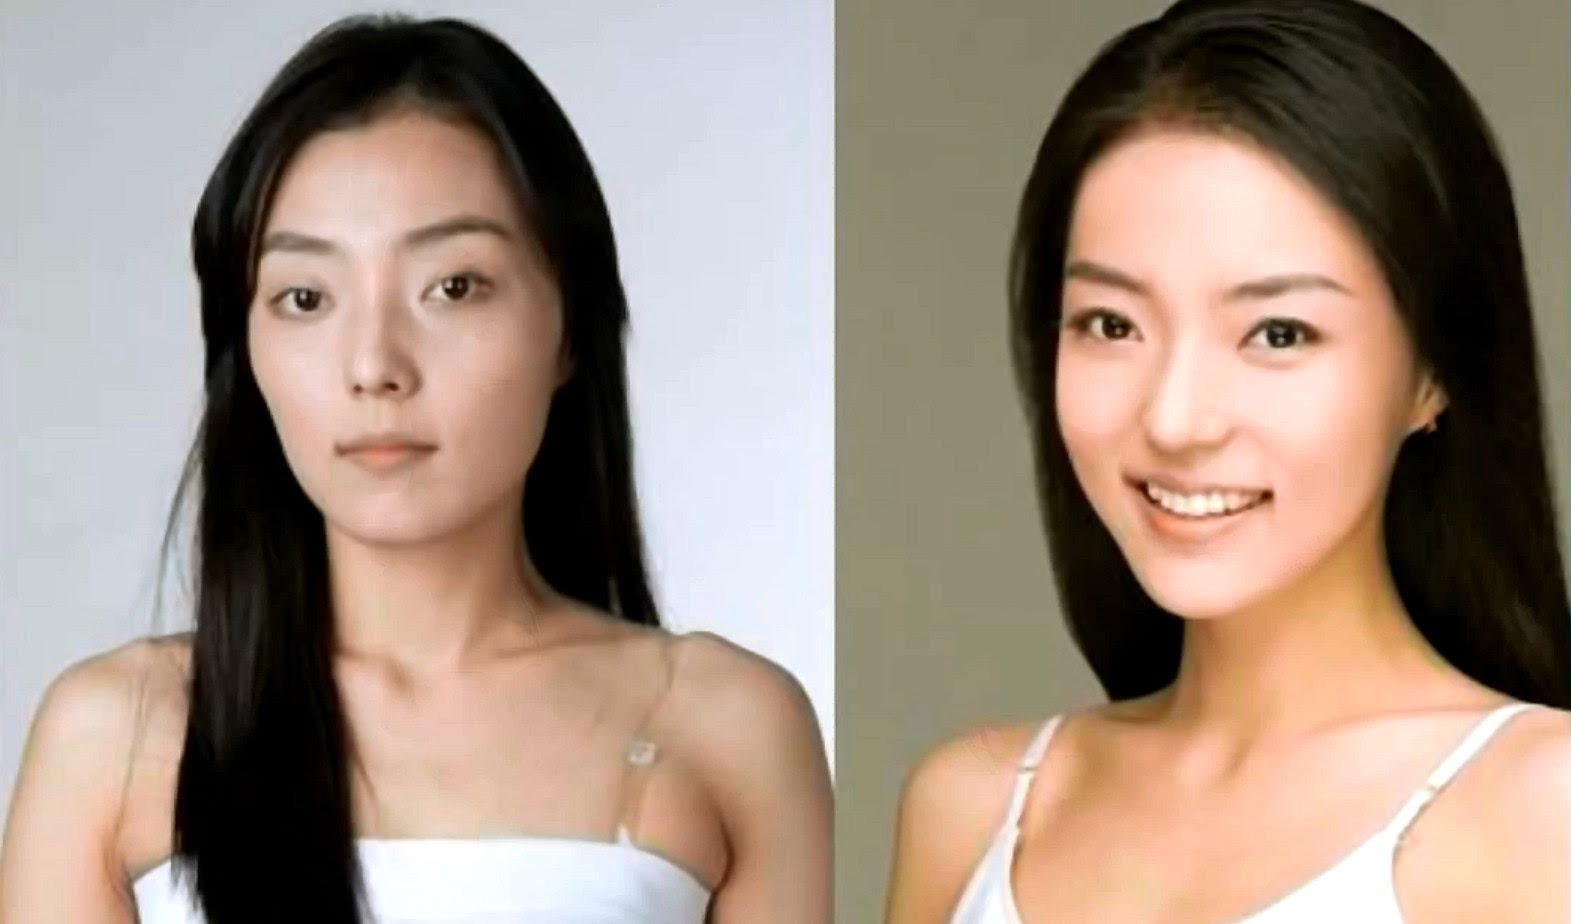 Get The Look You Want With Cosmetic Surgery In Korea